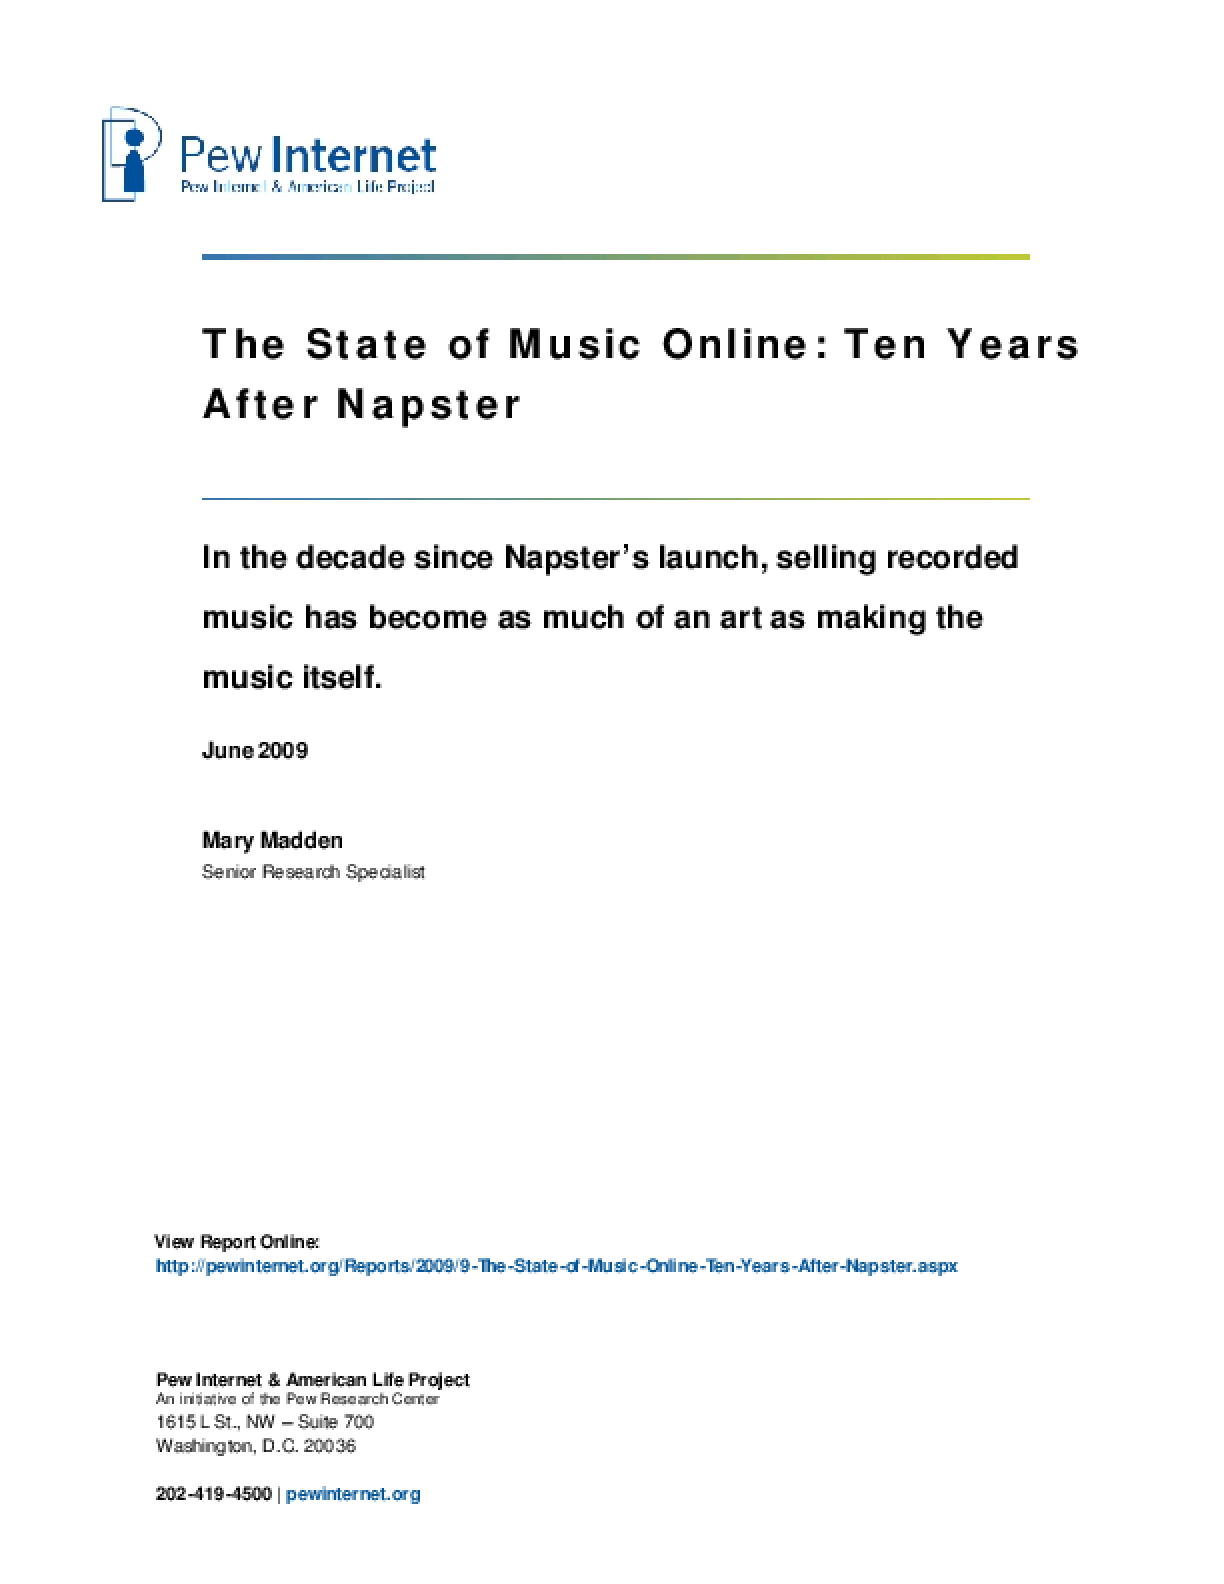 The State of Music Online: Ten Years After Napster